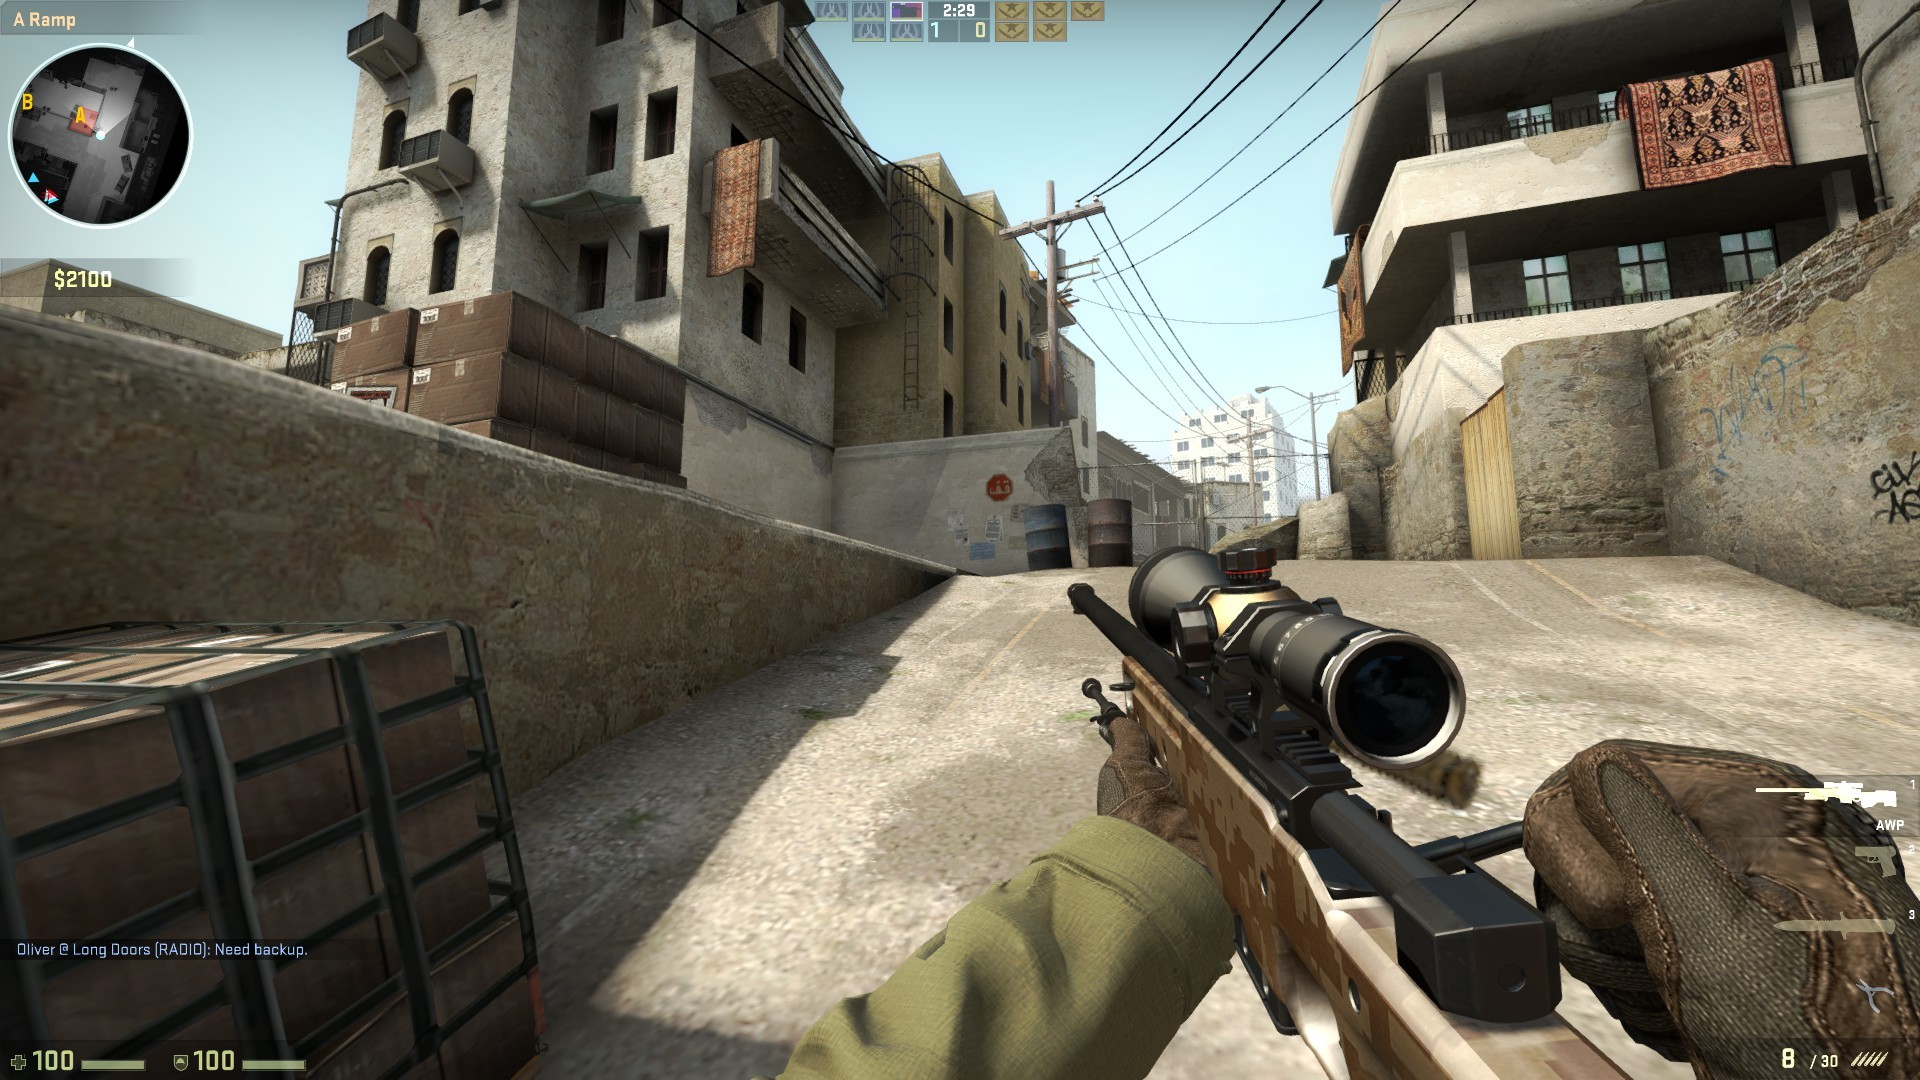 Советы новичкам по игре Counter-Strike: Global Offensive